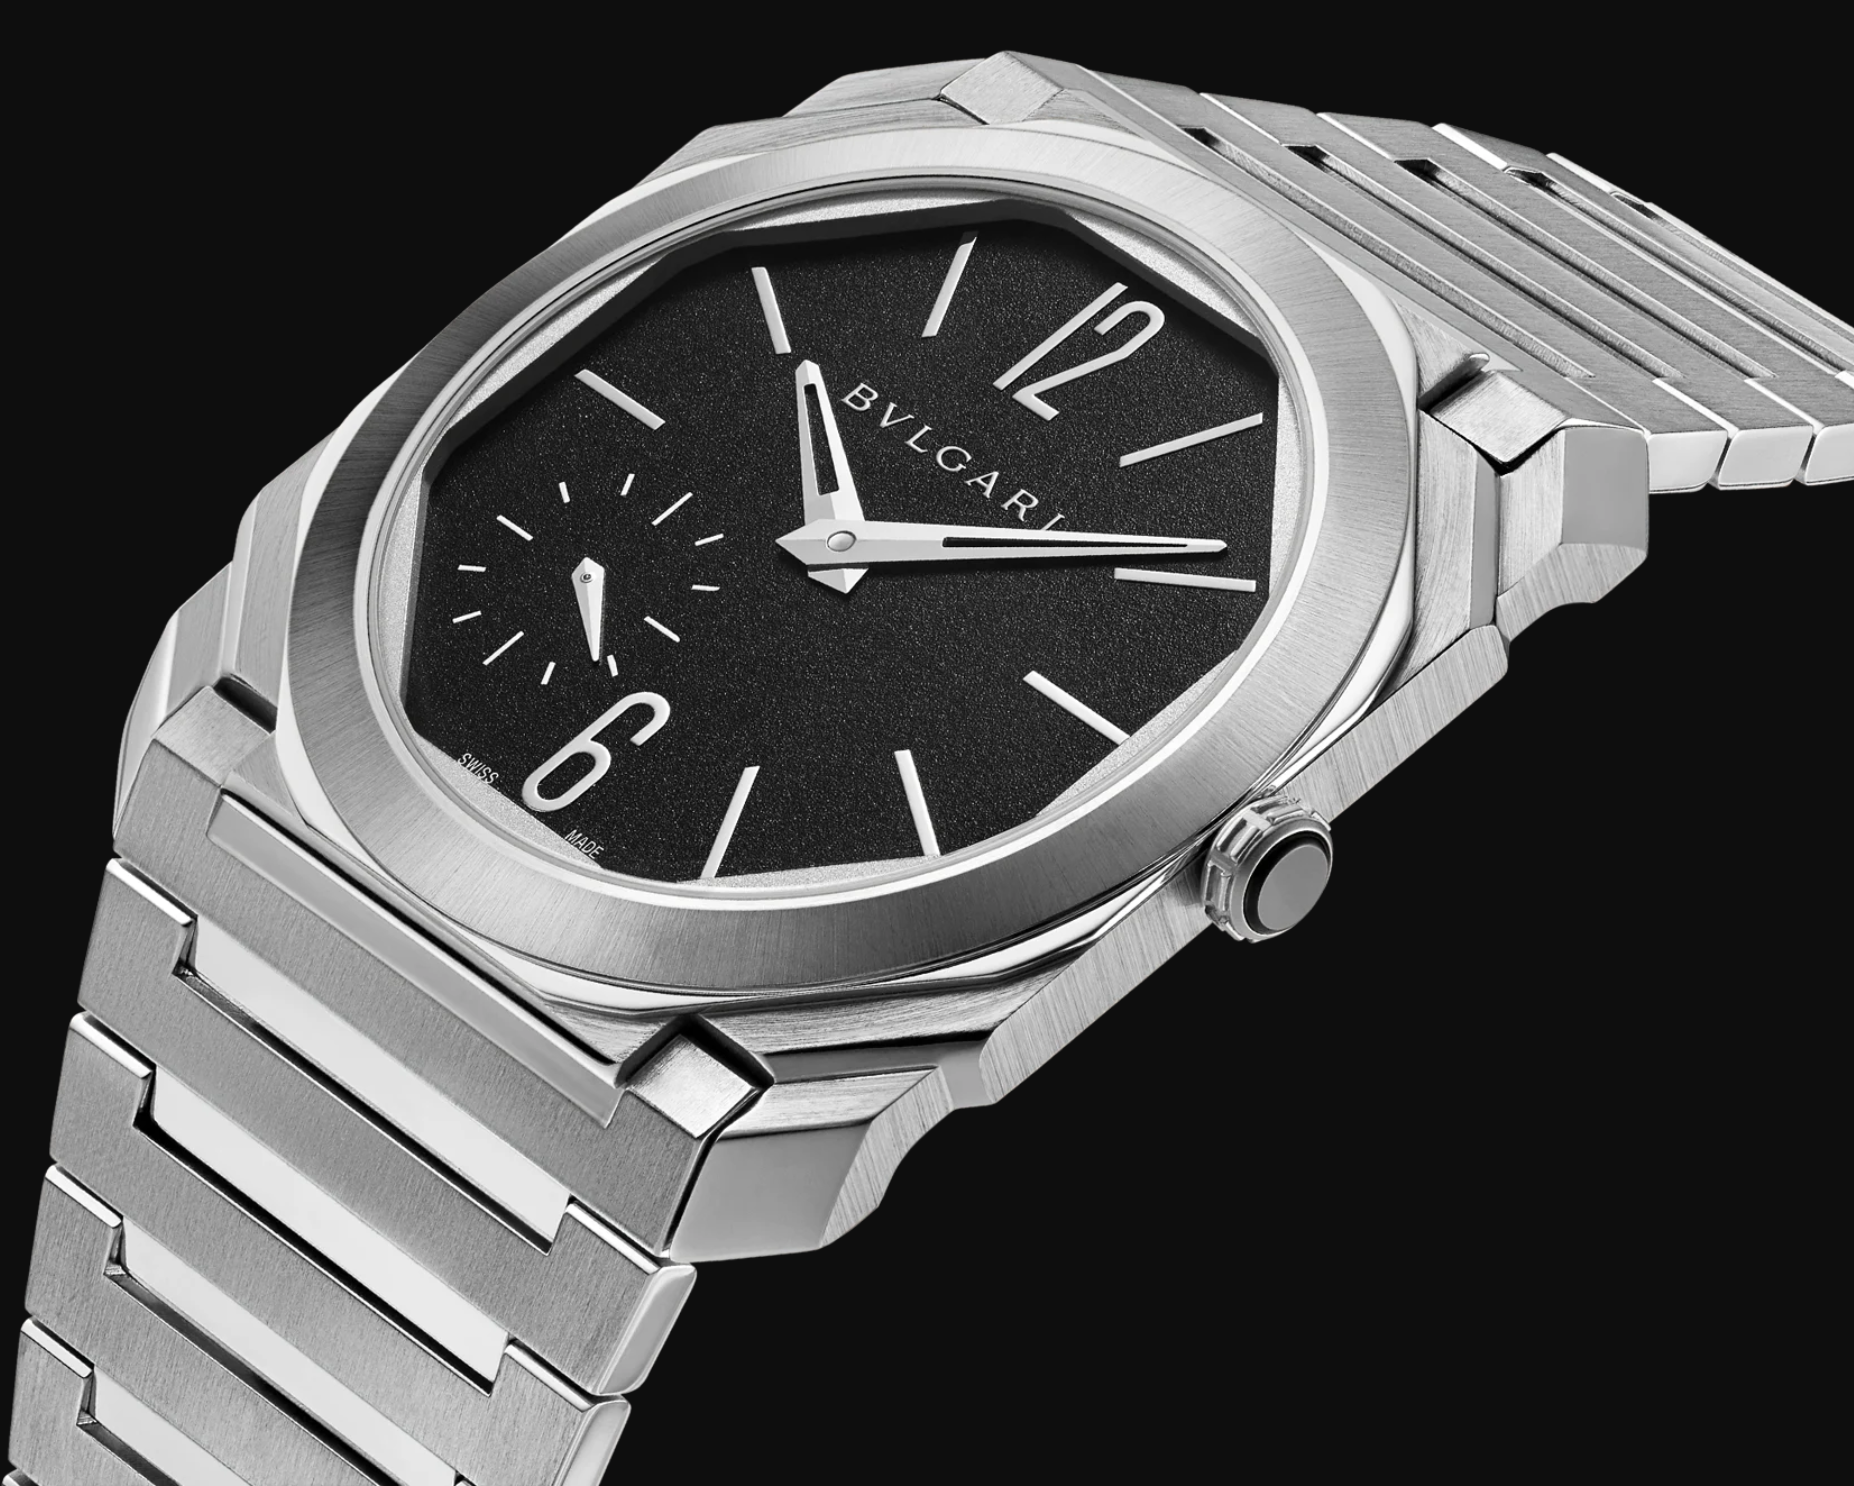 Bulgari Octo Finissimo satin polished steel review pricing 2020